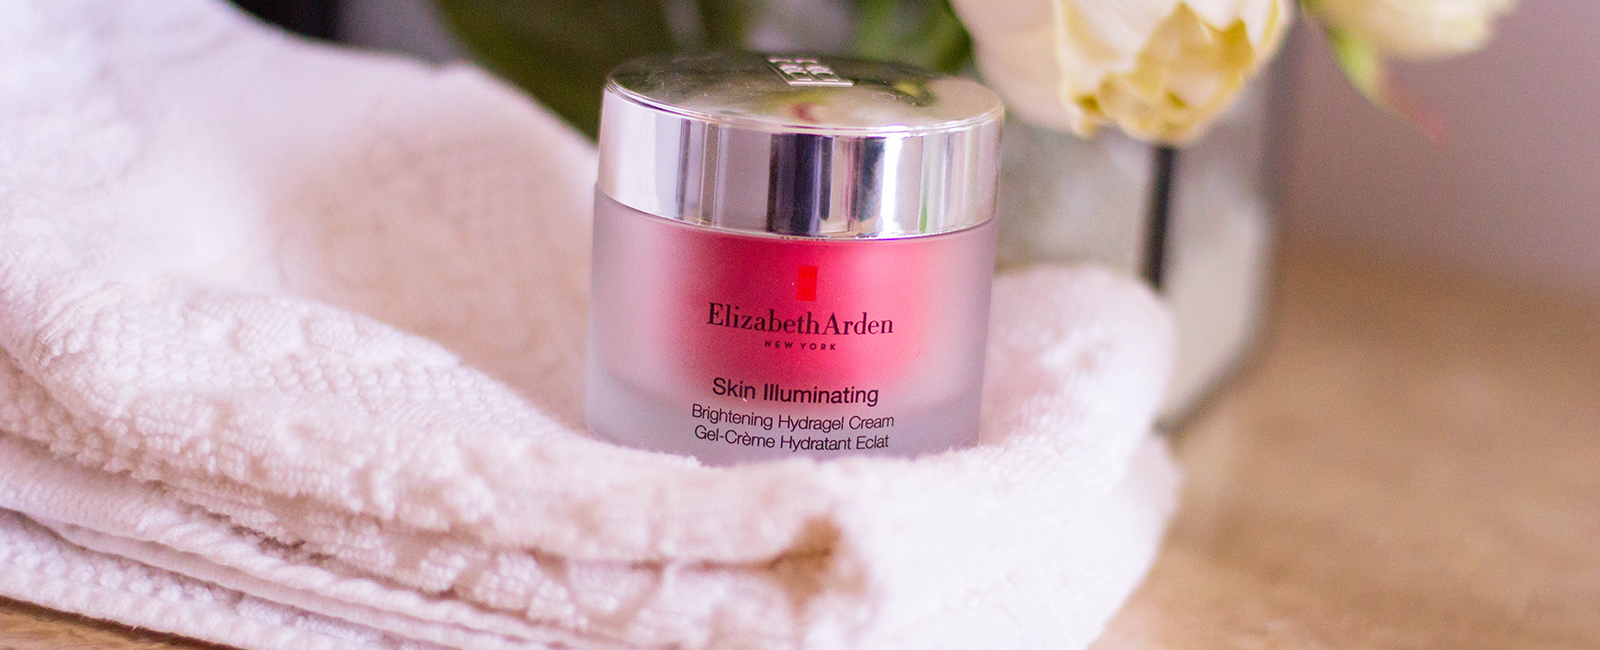 Beauty Review: Elizabeth Arden Skin Illuminating Brightening Hydragel Cream